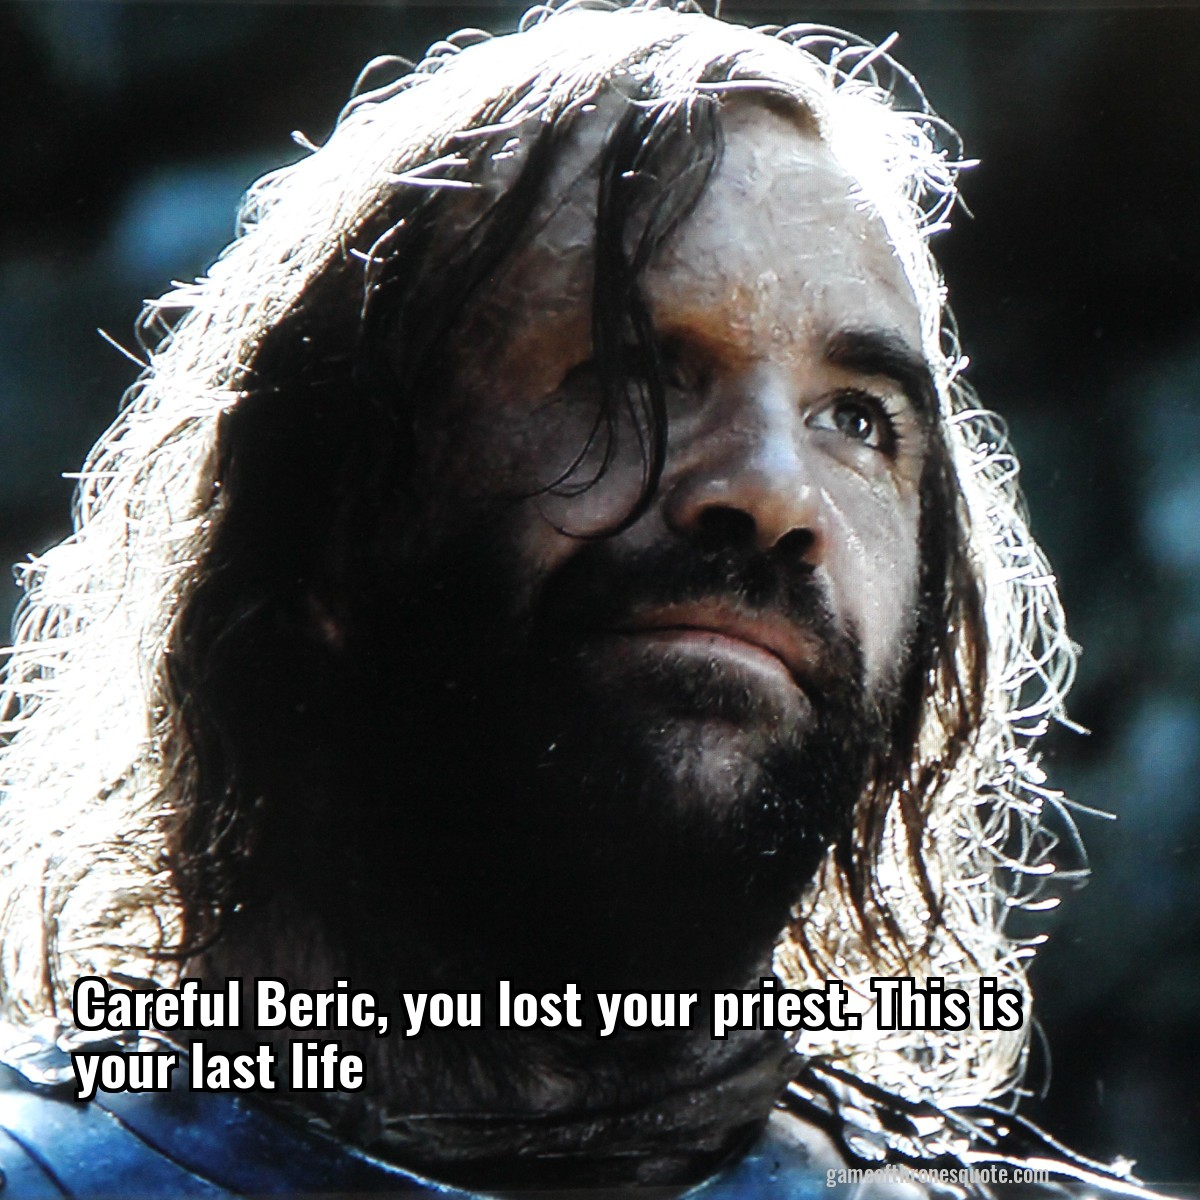 Careful Beric, you lost your priest. This is your last life